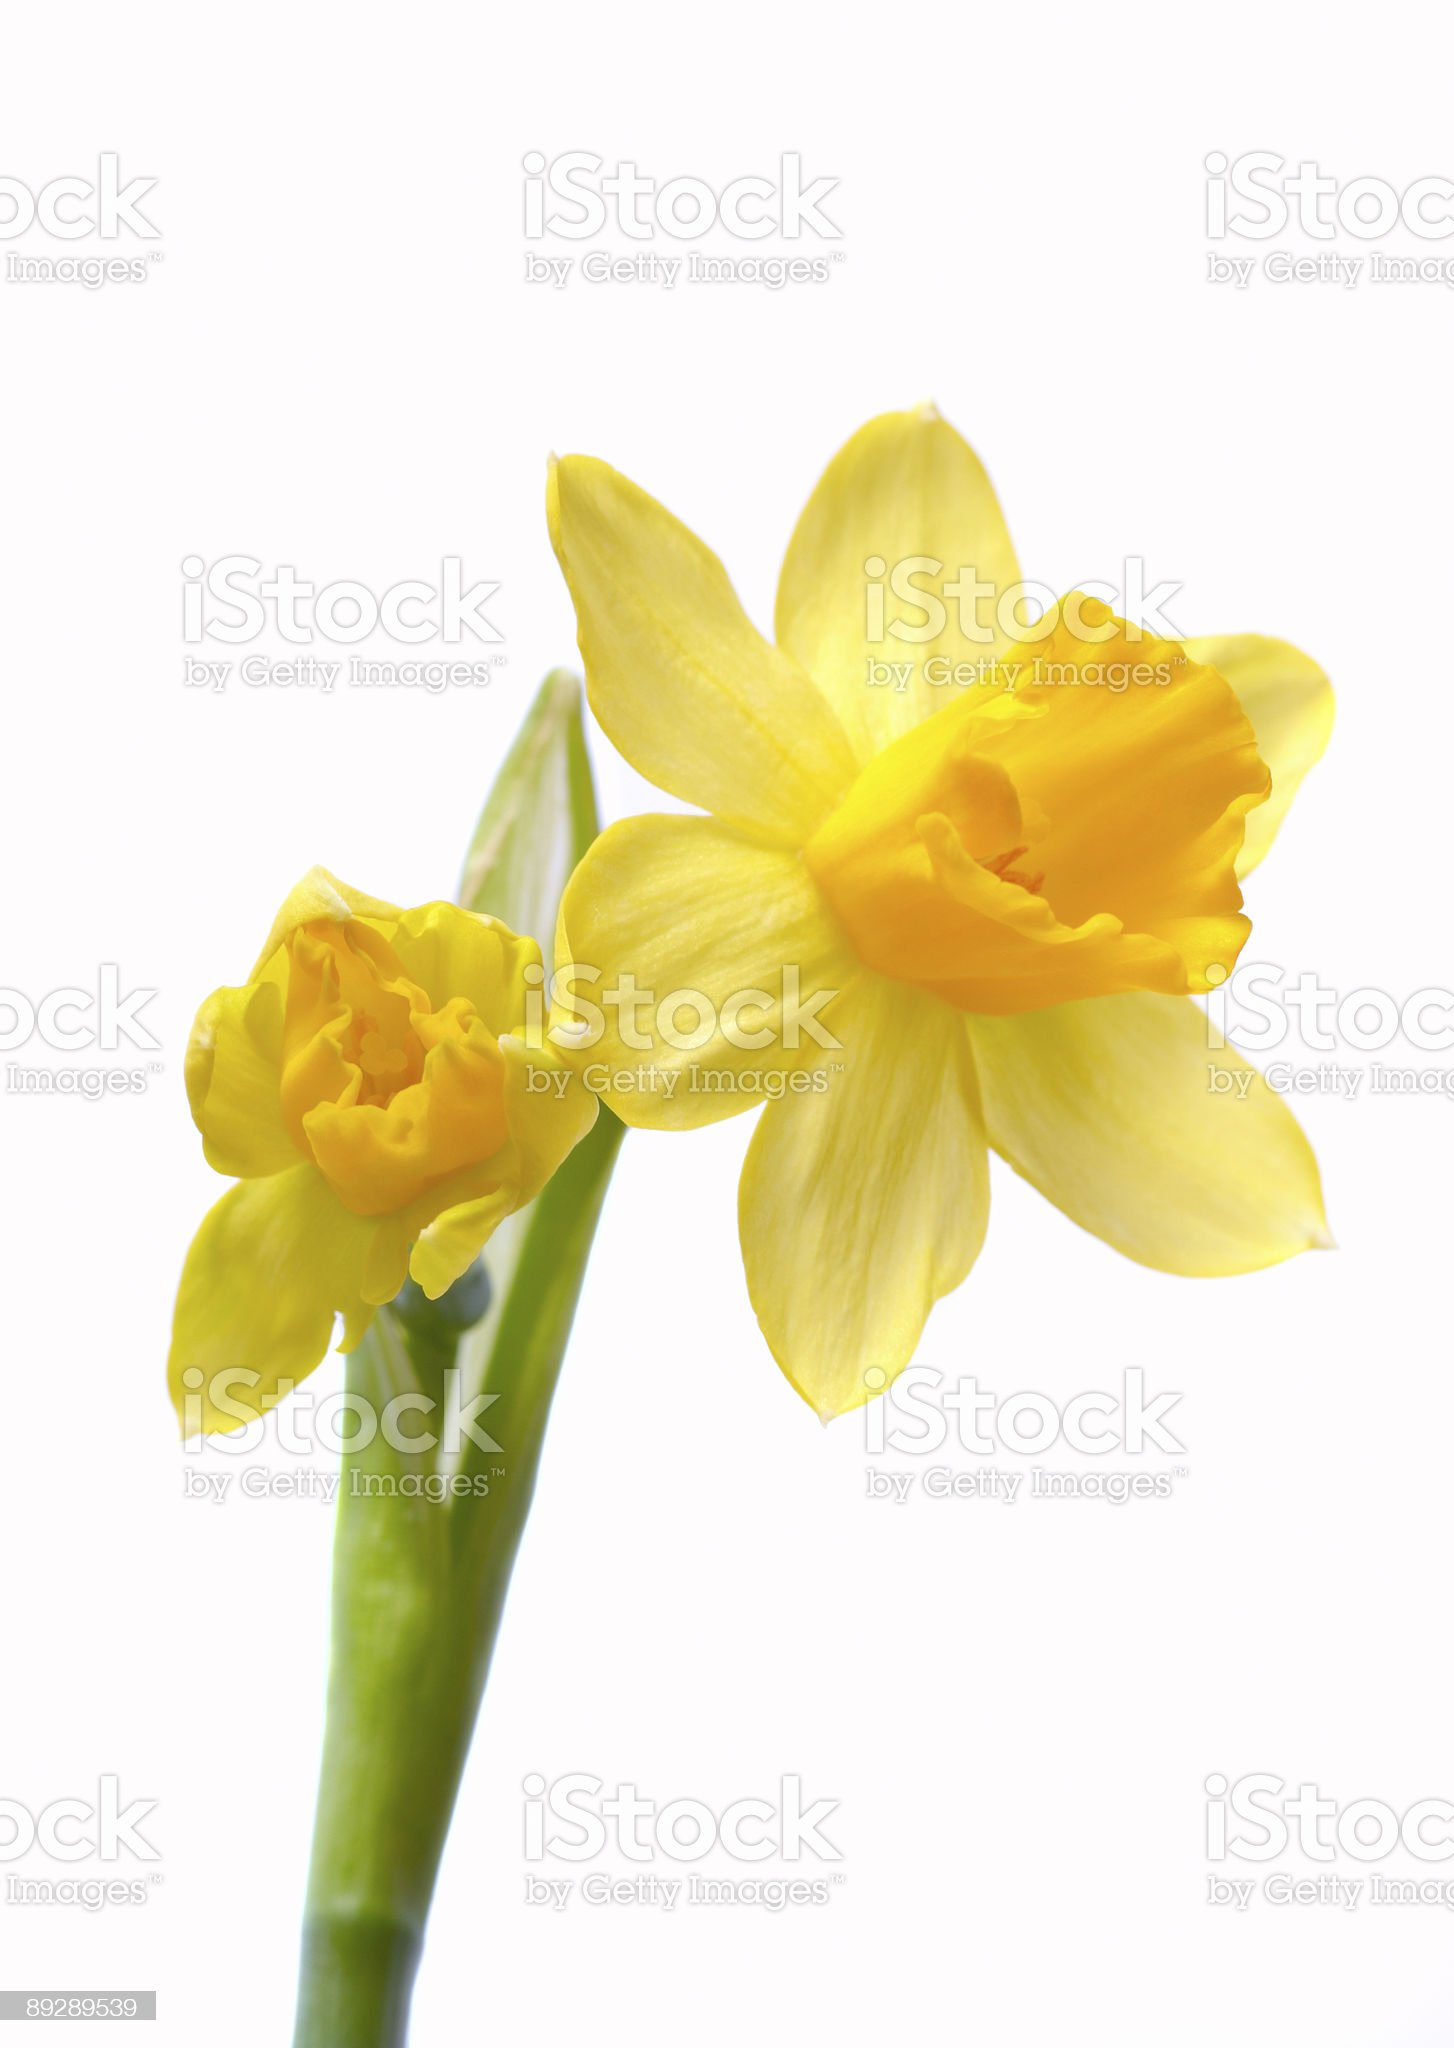 Close-up of yellow daffodils on white background royalty-free stock photo